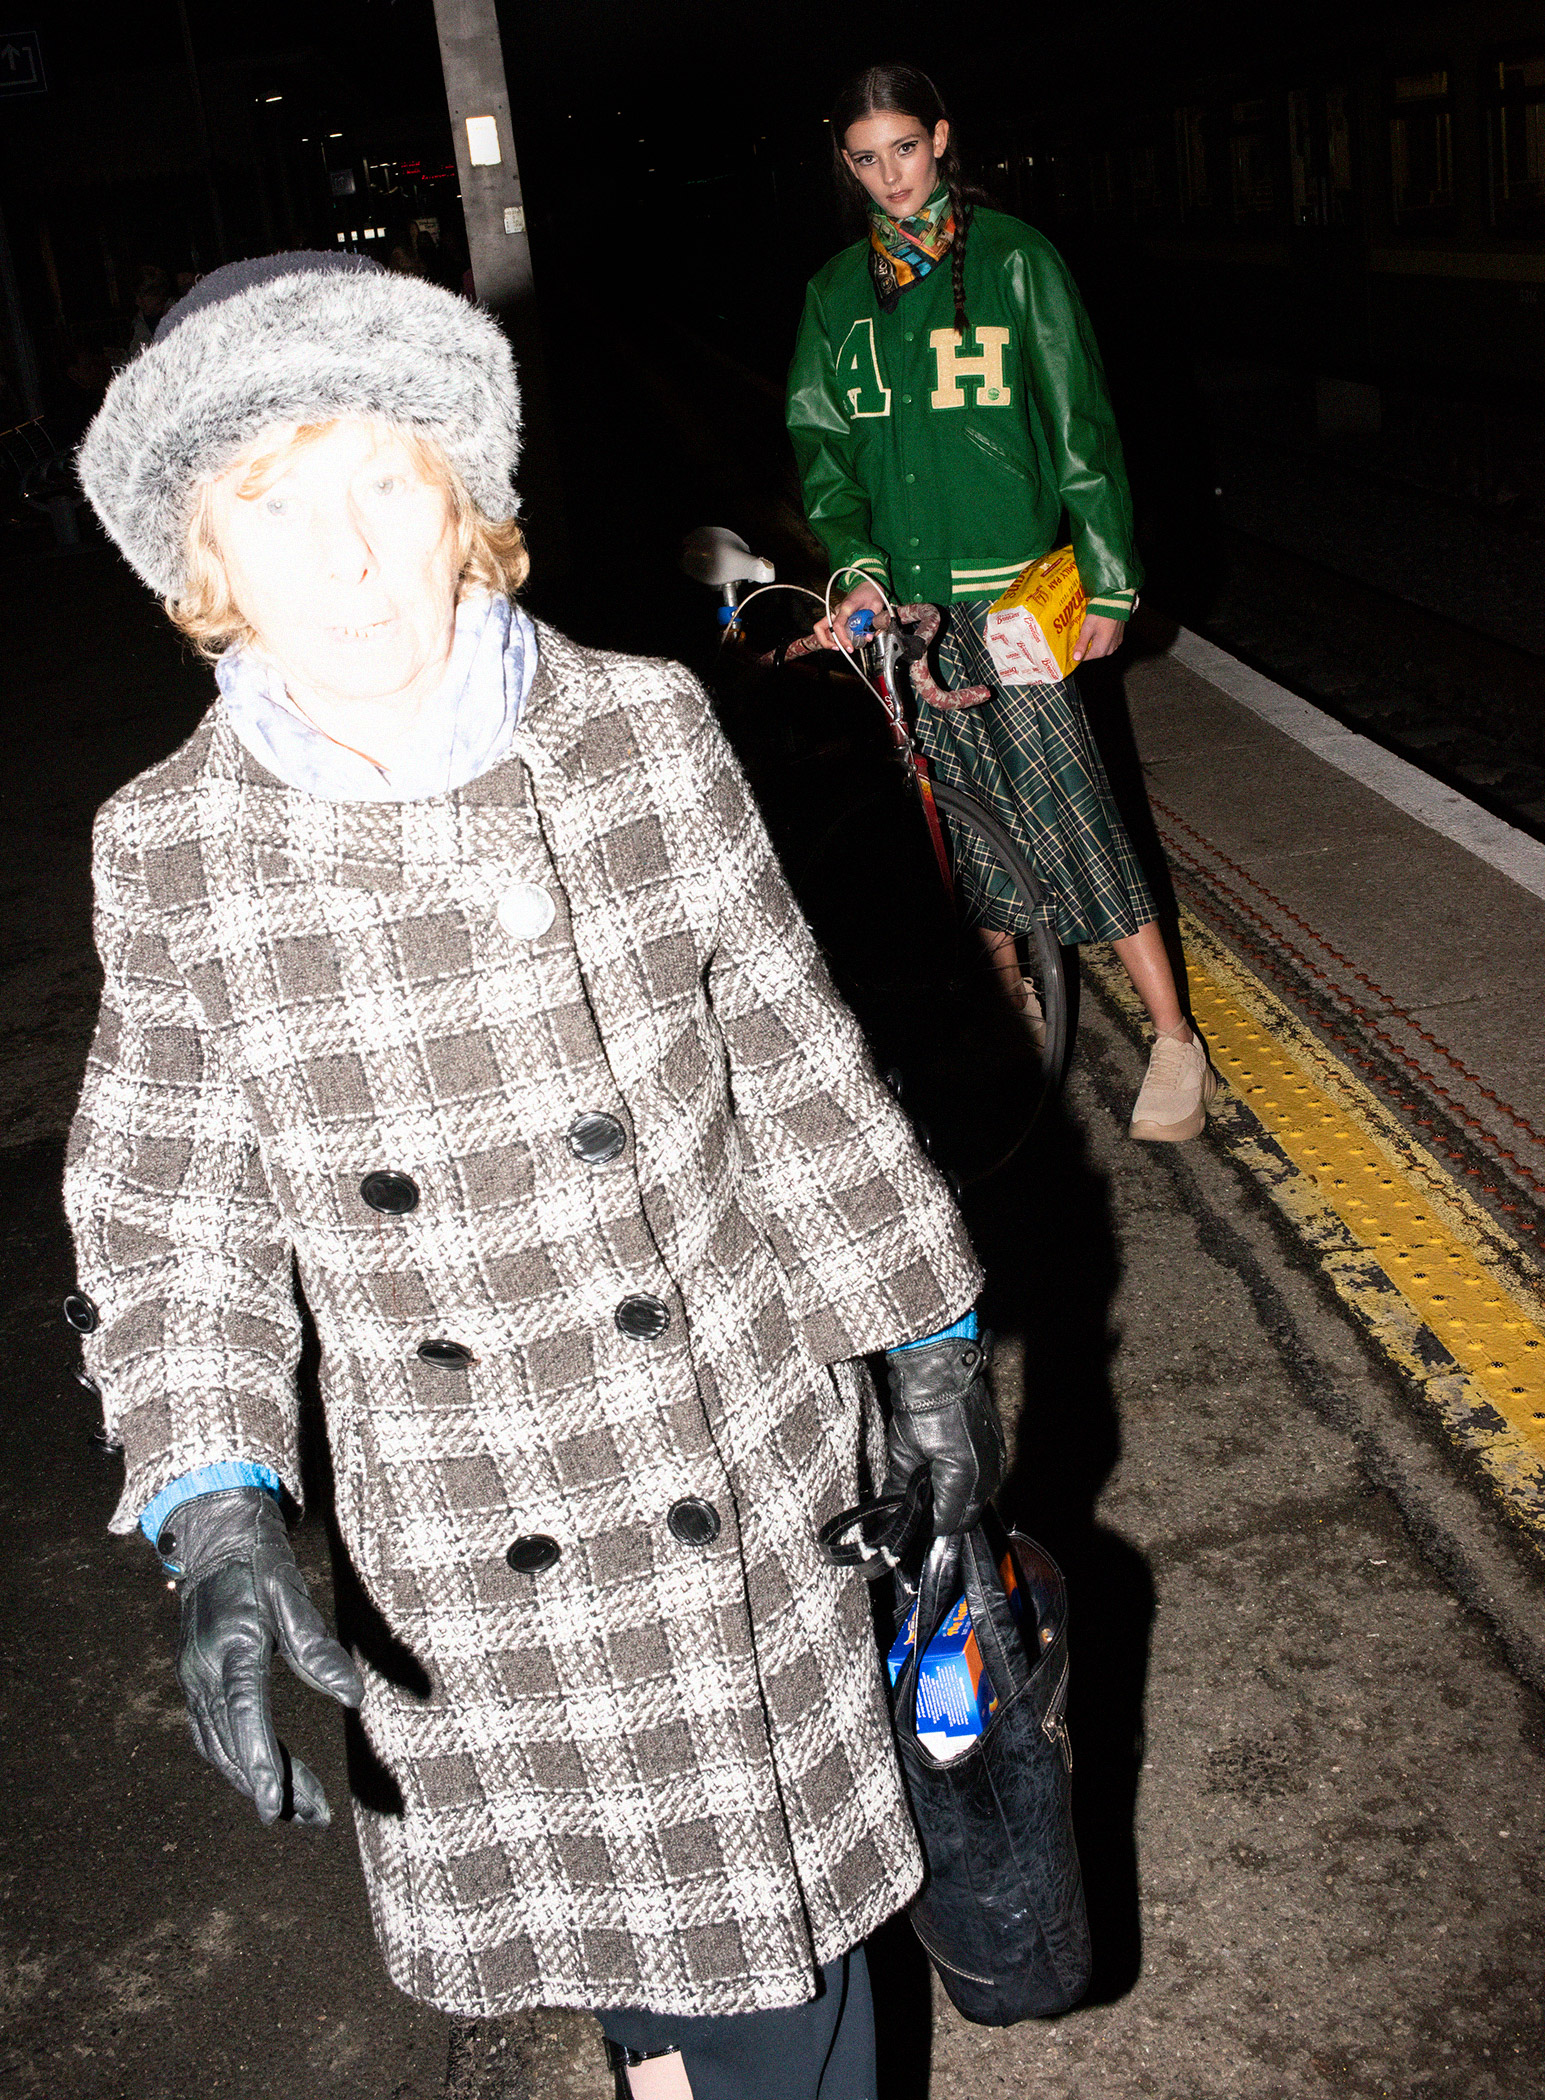 Green-jacket-and-skirt-with-granny-walking-5960.jpg